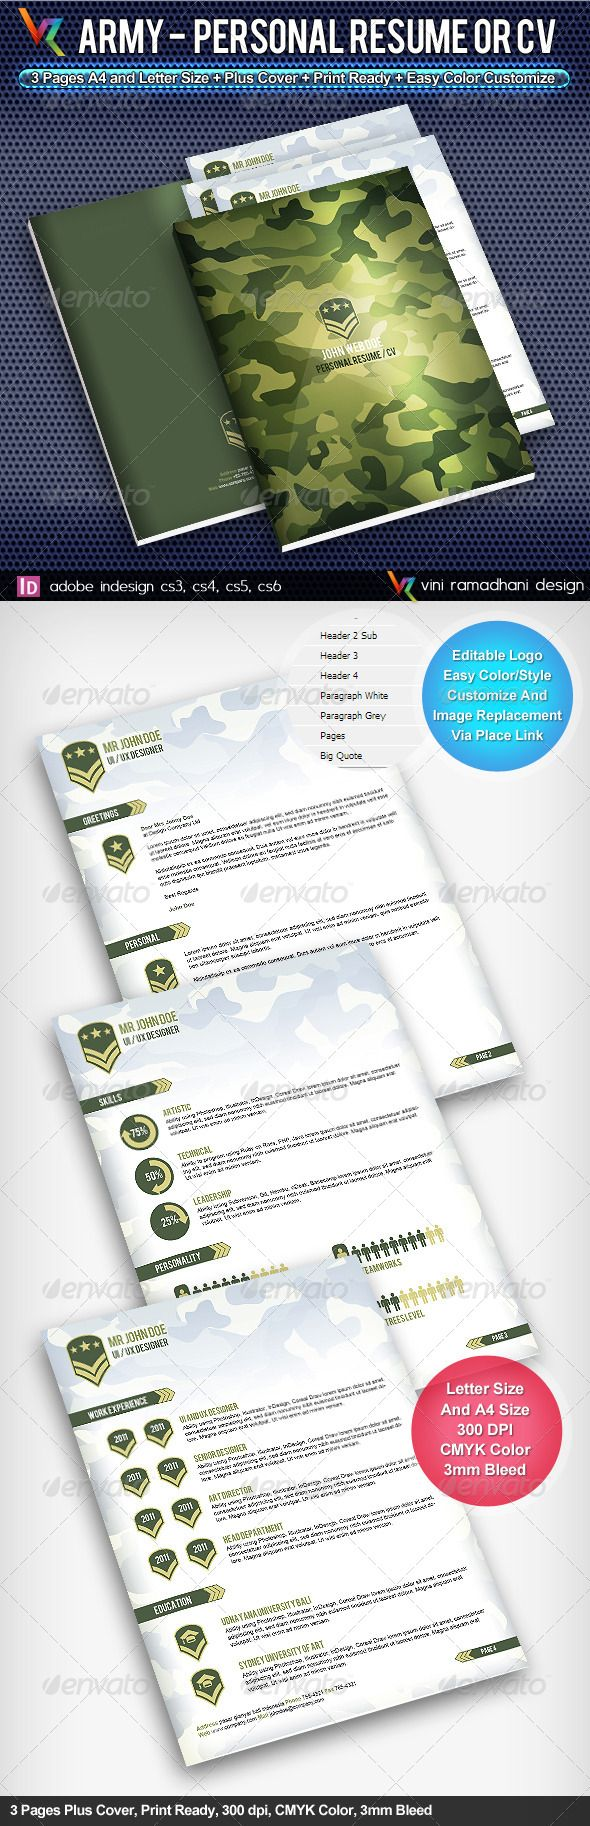 computer programs for resume%0A modnar net Central America Internet Ltd Resume Resumes Stationery Download  here https graphicriver net